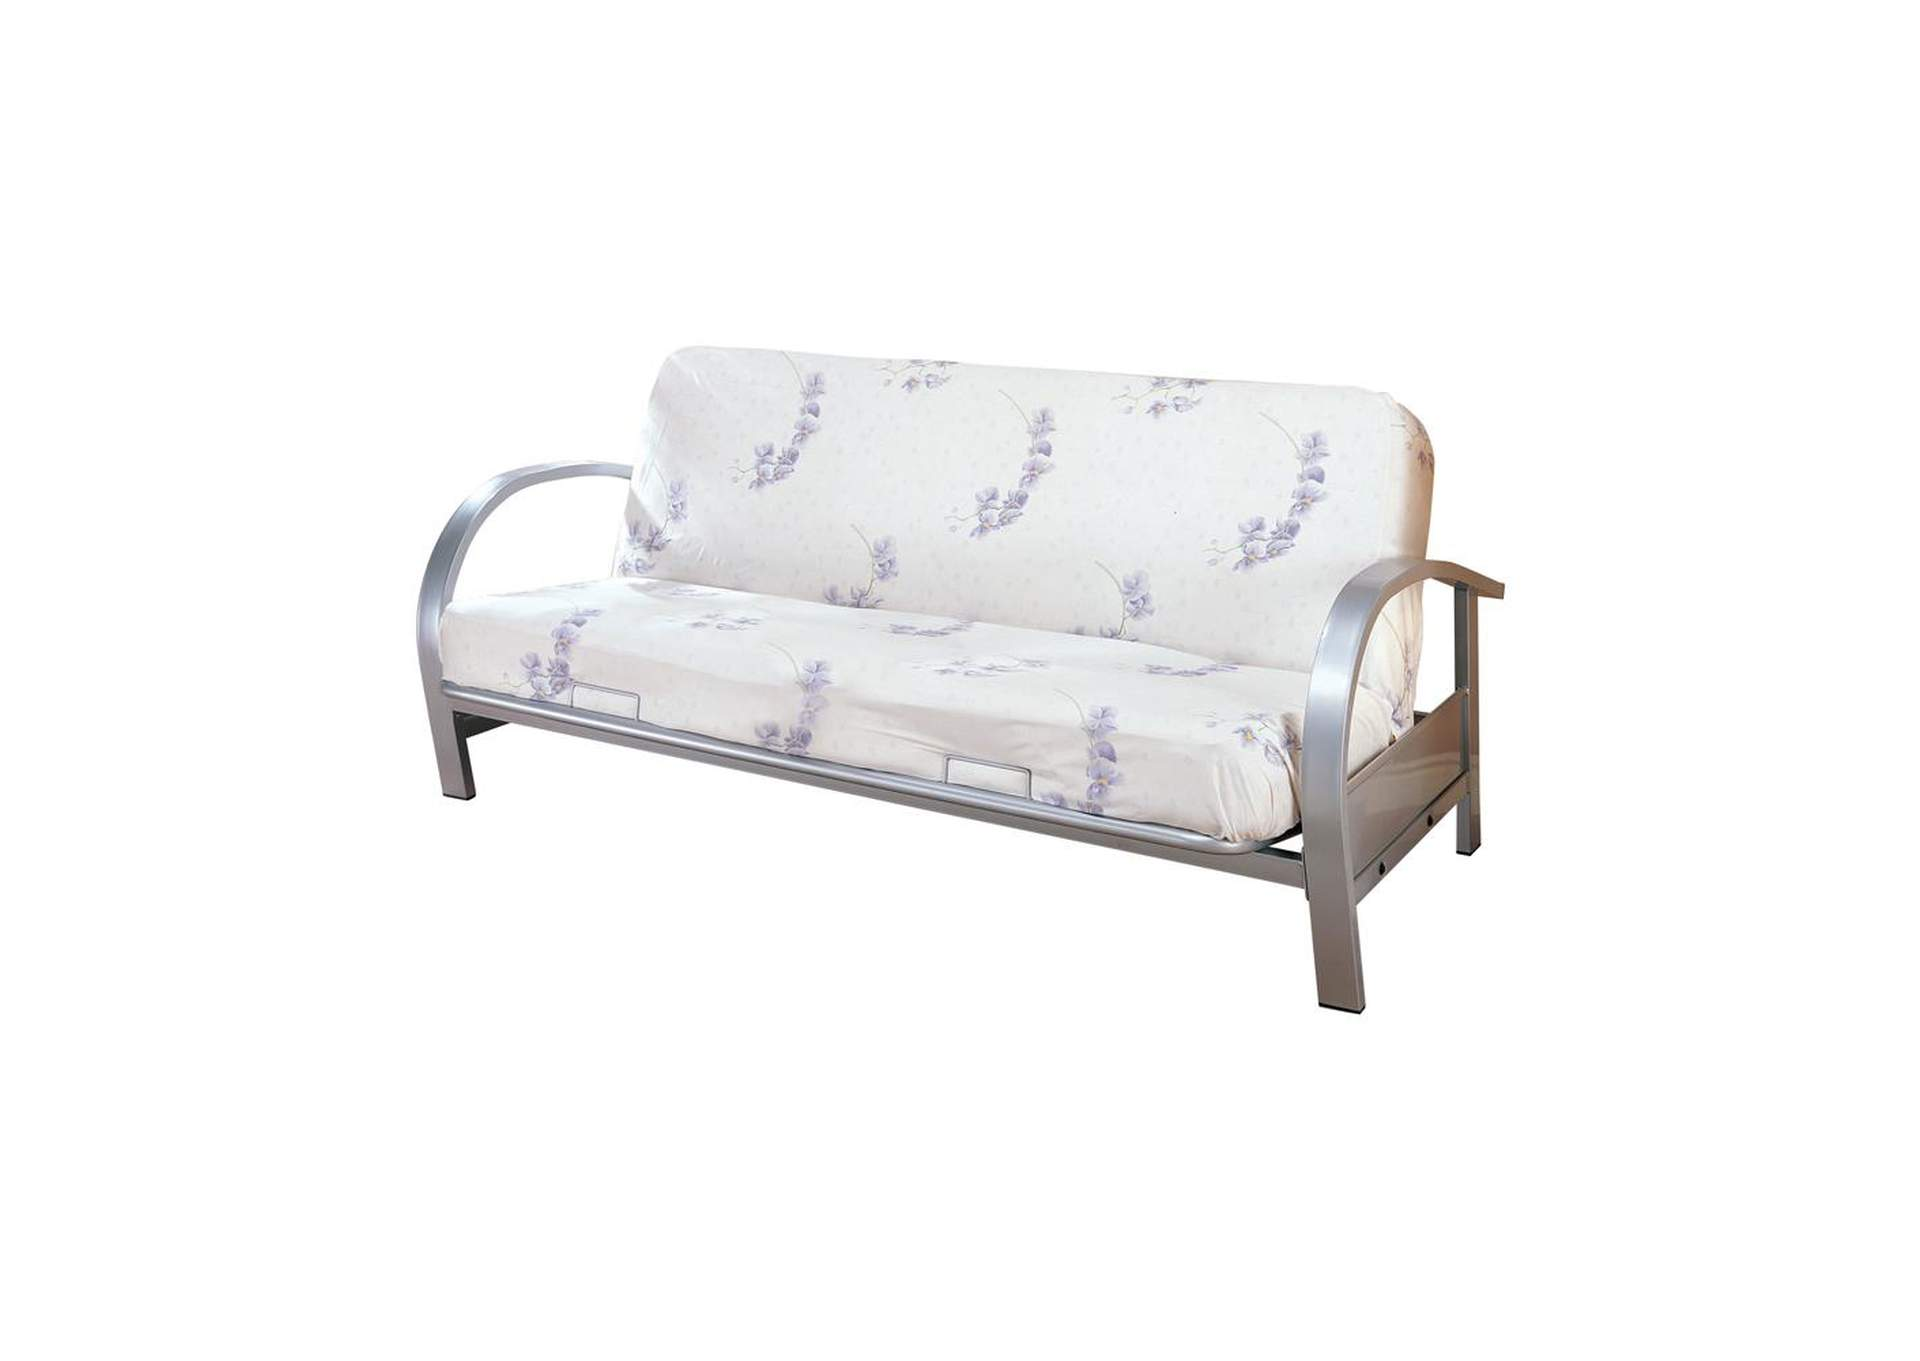 Silver Transitional Silver Futon Frame,Coaster Furniture